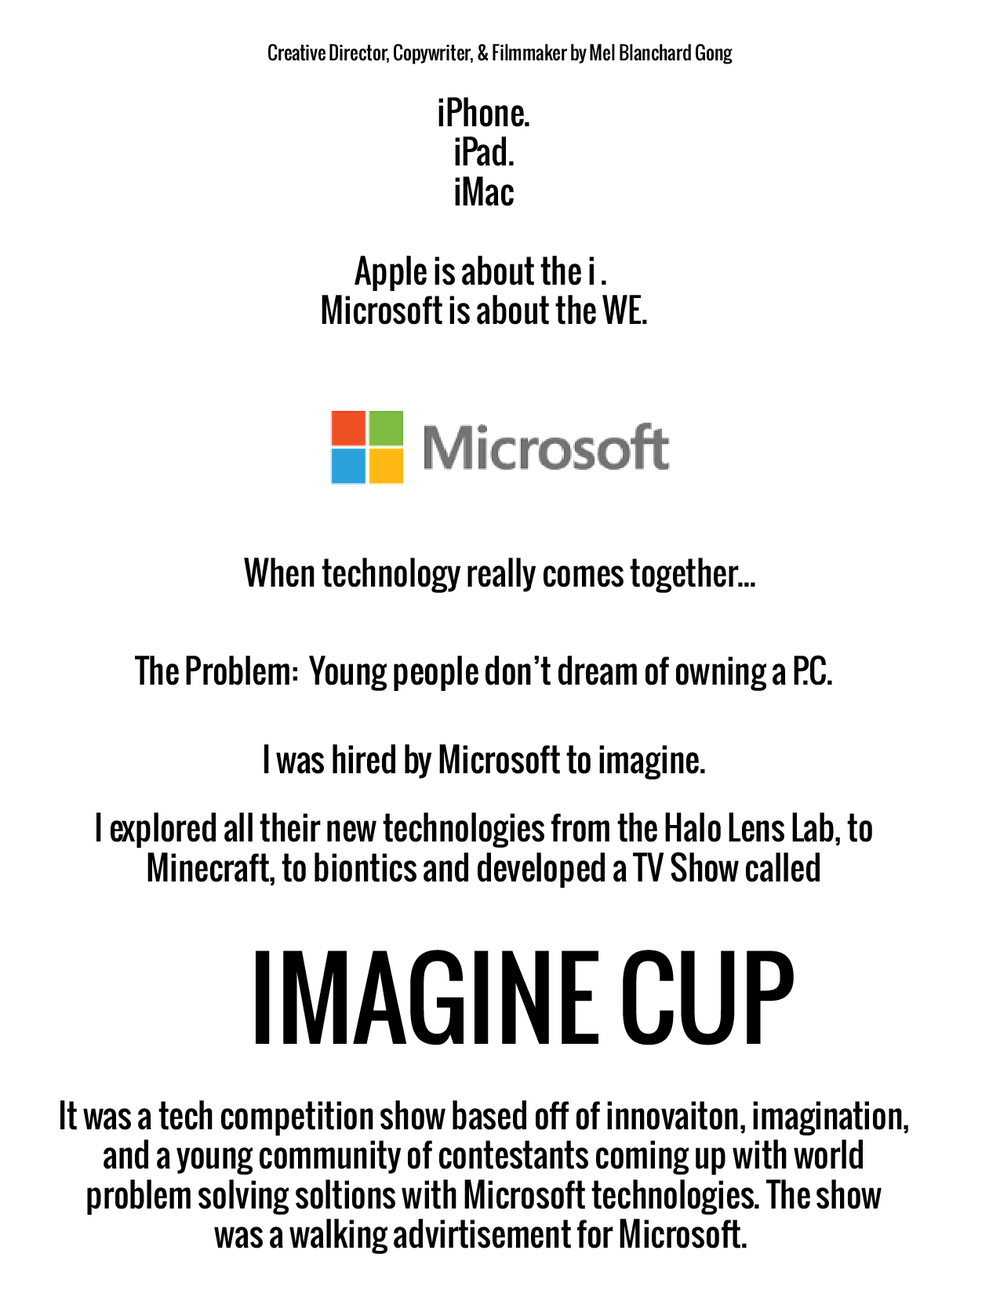 mel blanchard gong ad campaign microsoft imagine cup.png